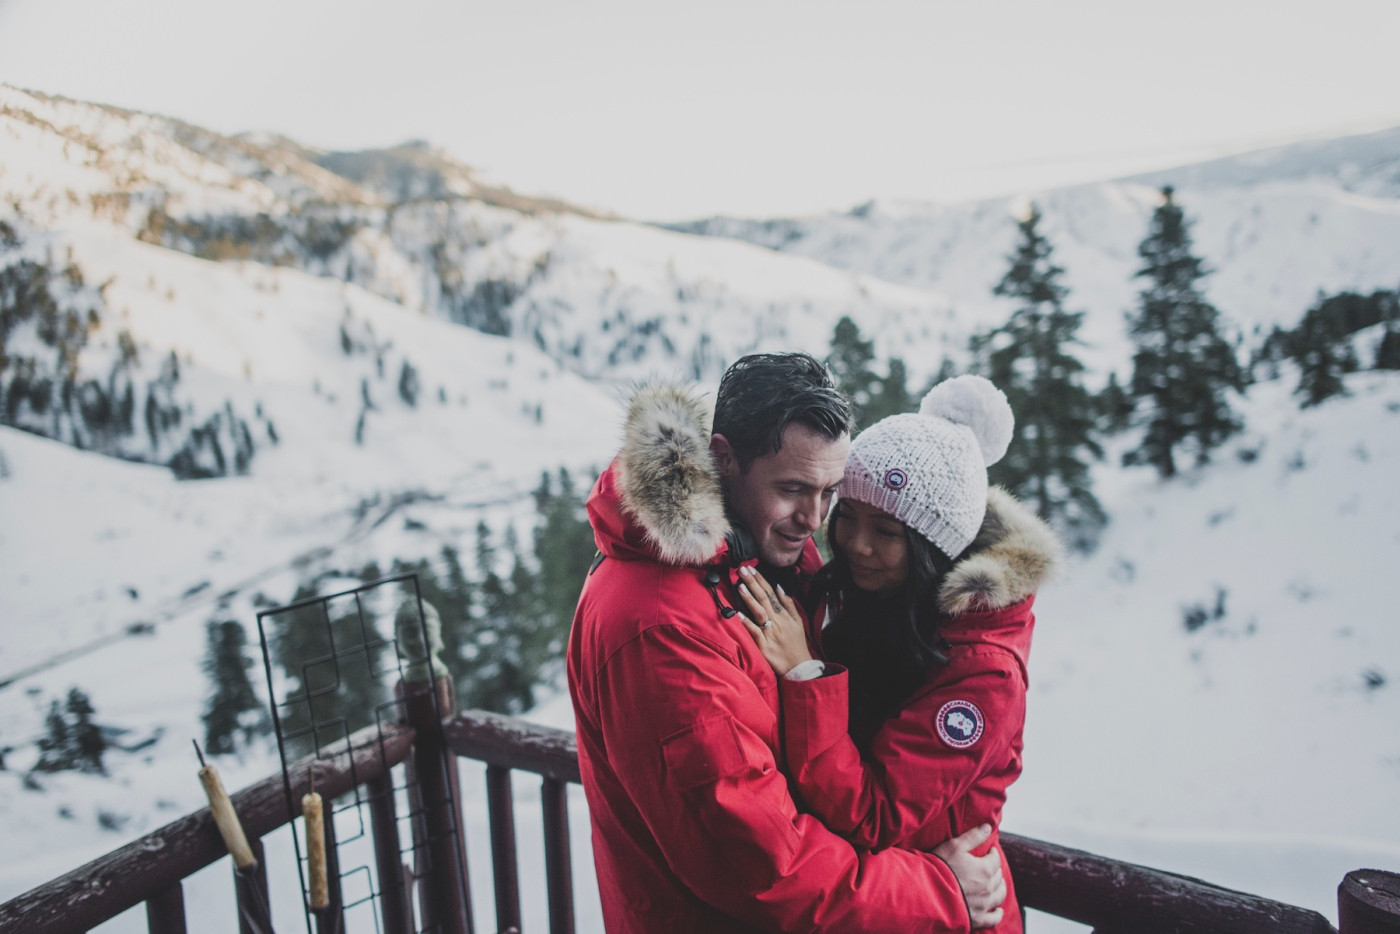 leavenworth_elopement_by_jane_speleers_photography_seattle_photographer_2017_winter_snow_joy_and_jason_rendezvous_ranch_cashmere_leavenworth_nahahum_canyon_all_rights_reserveddsc_0033